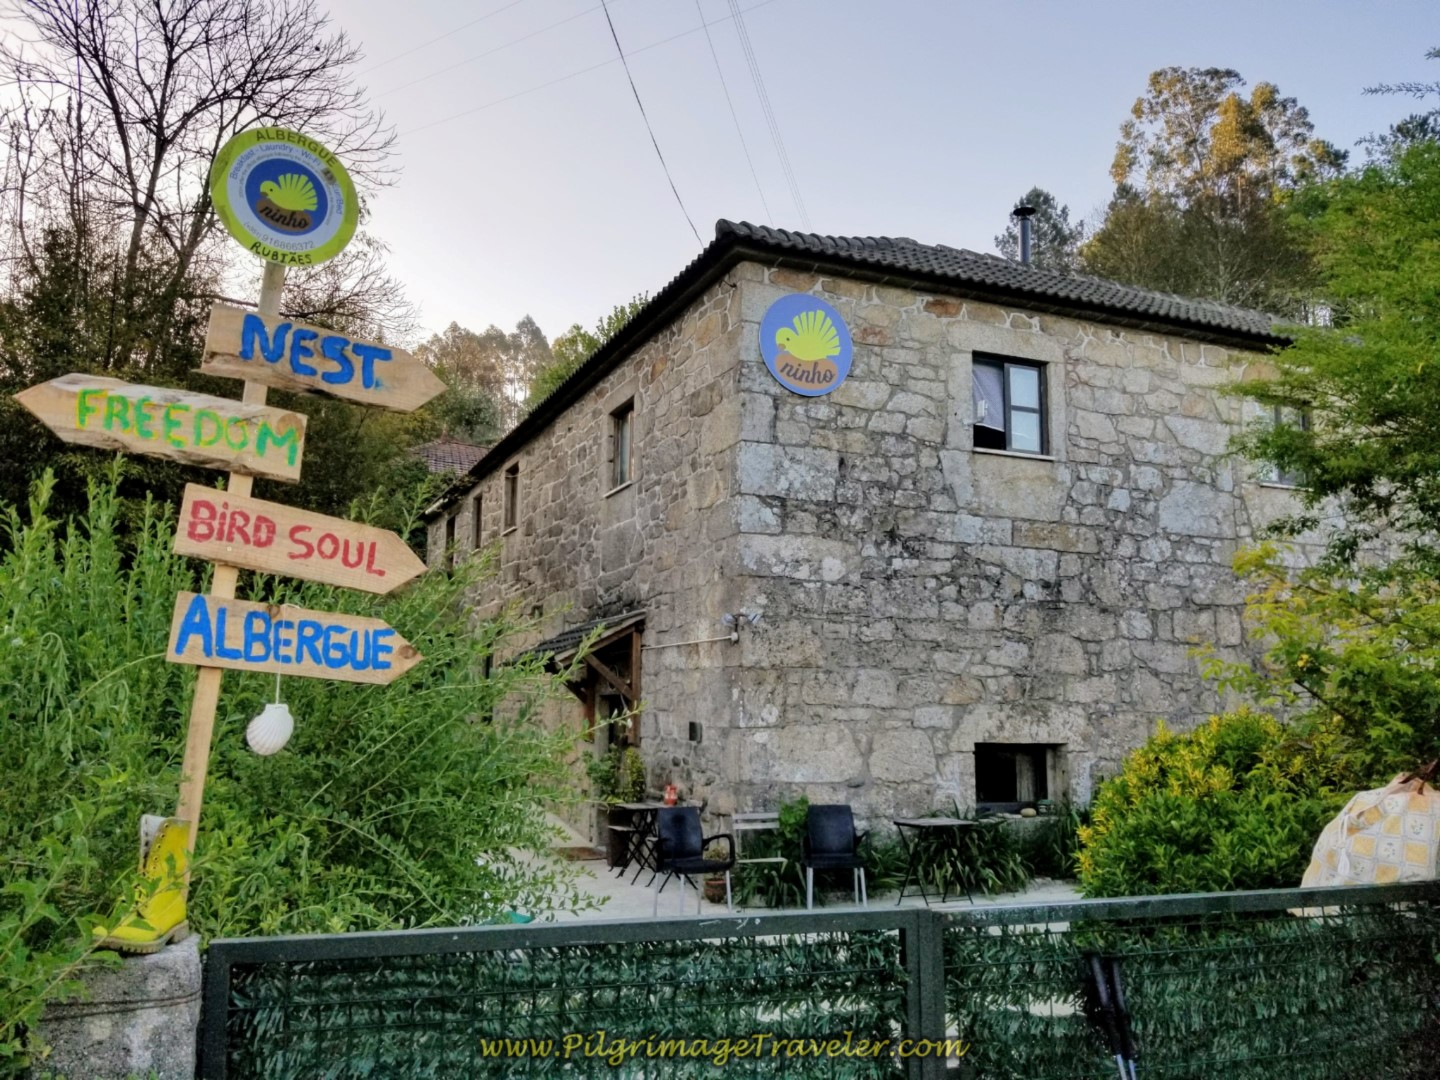 The Pilgrim's Nest Albergue Ninho in Rubiãs on day eighteen on the Central Route of the Portuguese Camino